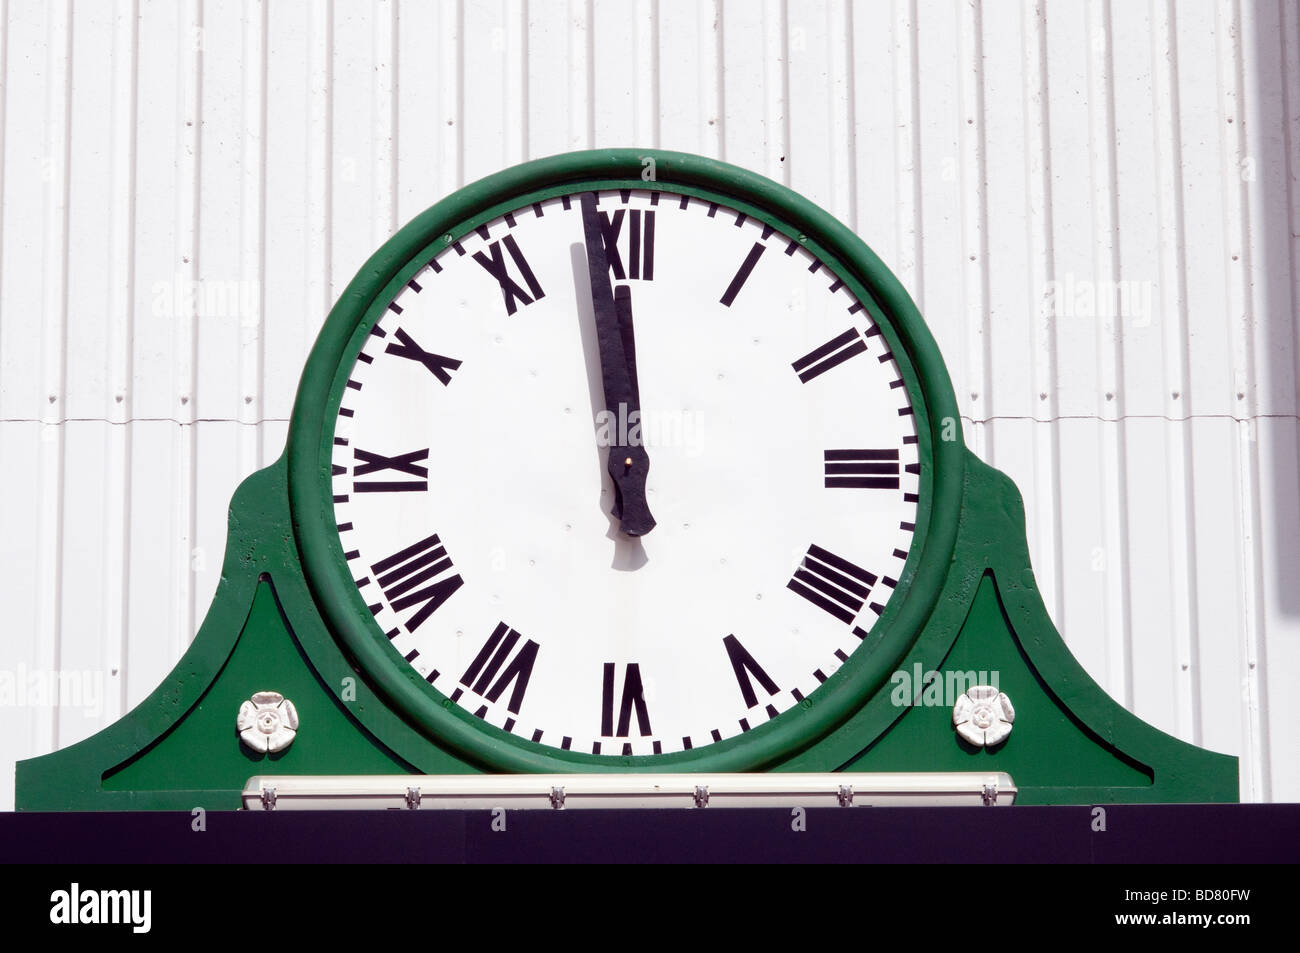 Large green and white restored 'cricket pavilion' clock displaying 'one minute to noon' - Stock Image